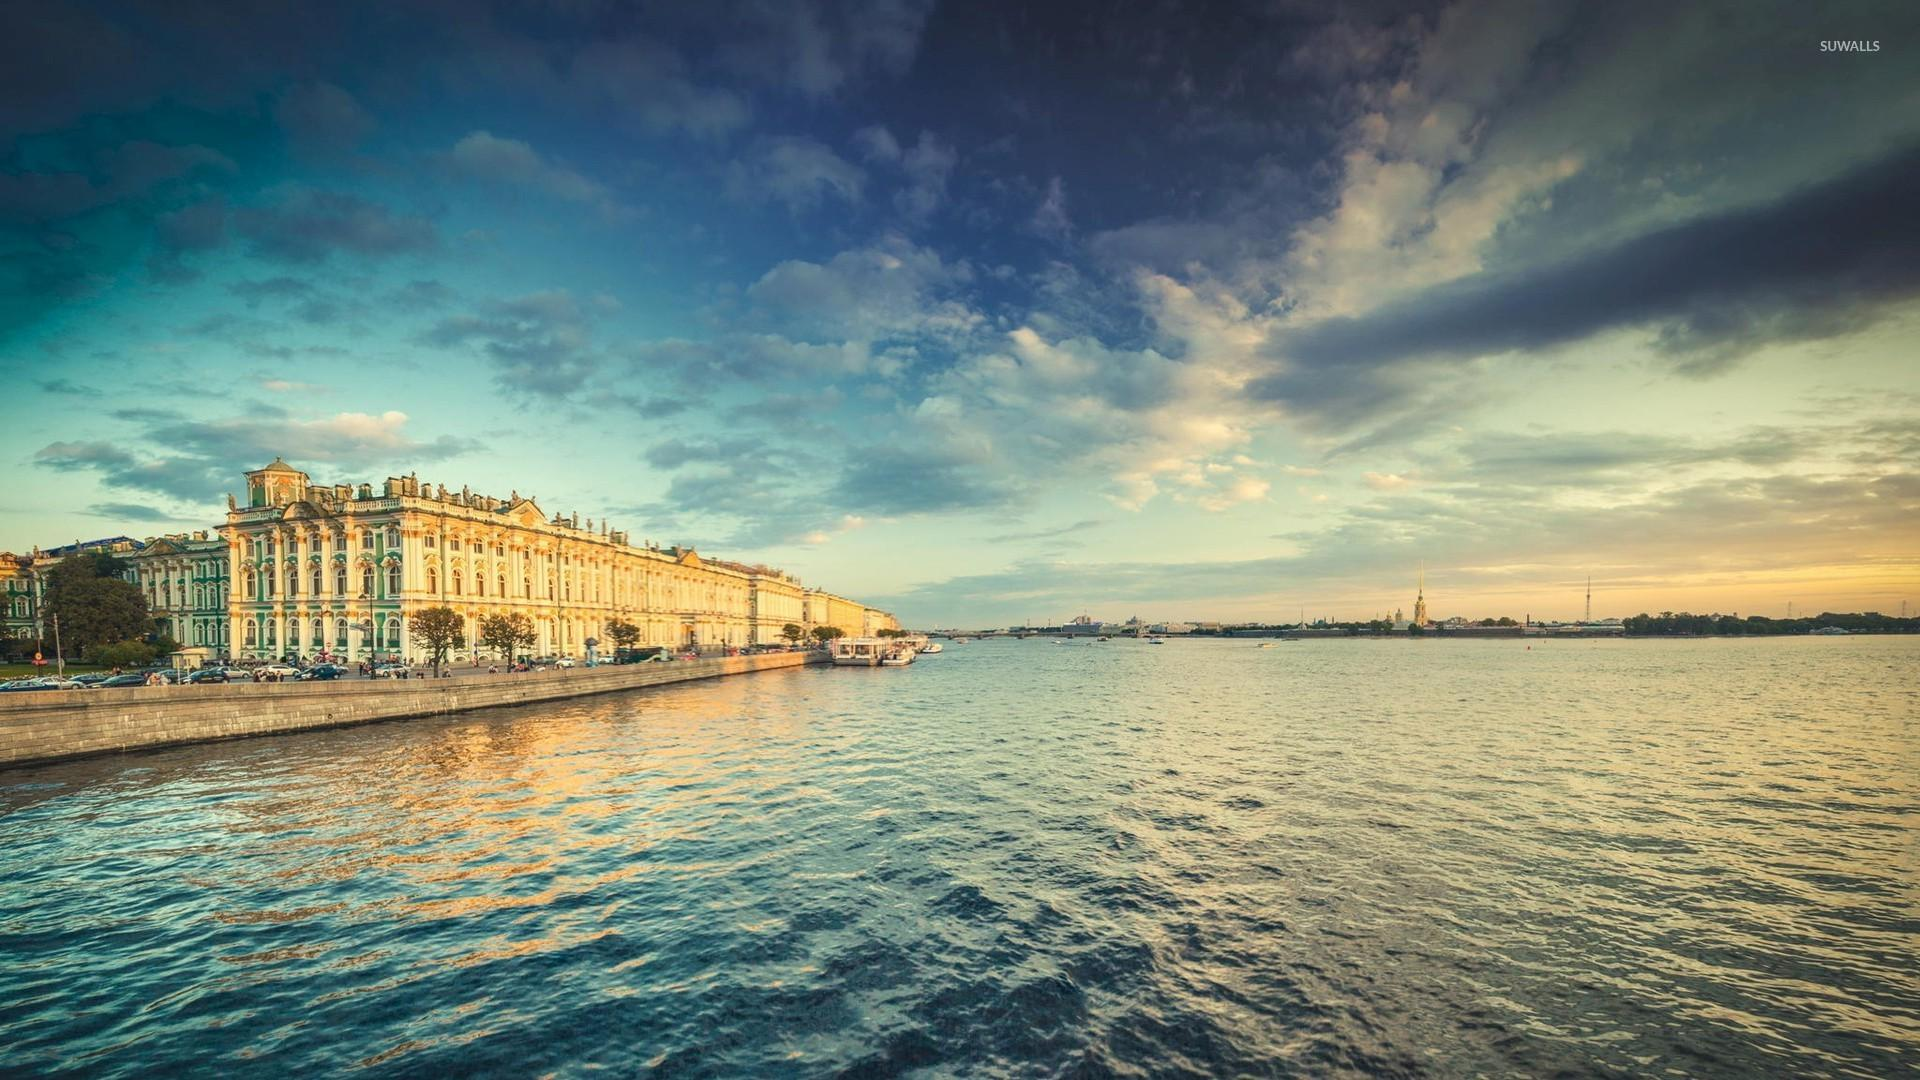 River Neva in Saint Petersburg wallpaper - World wallpapers - #48492